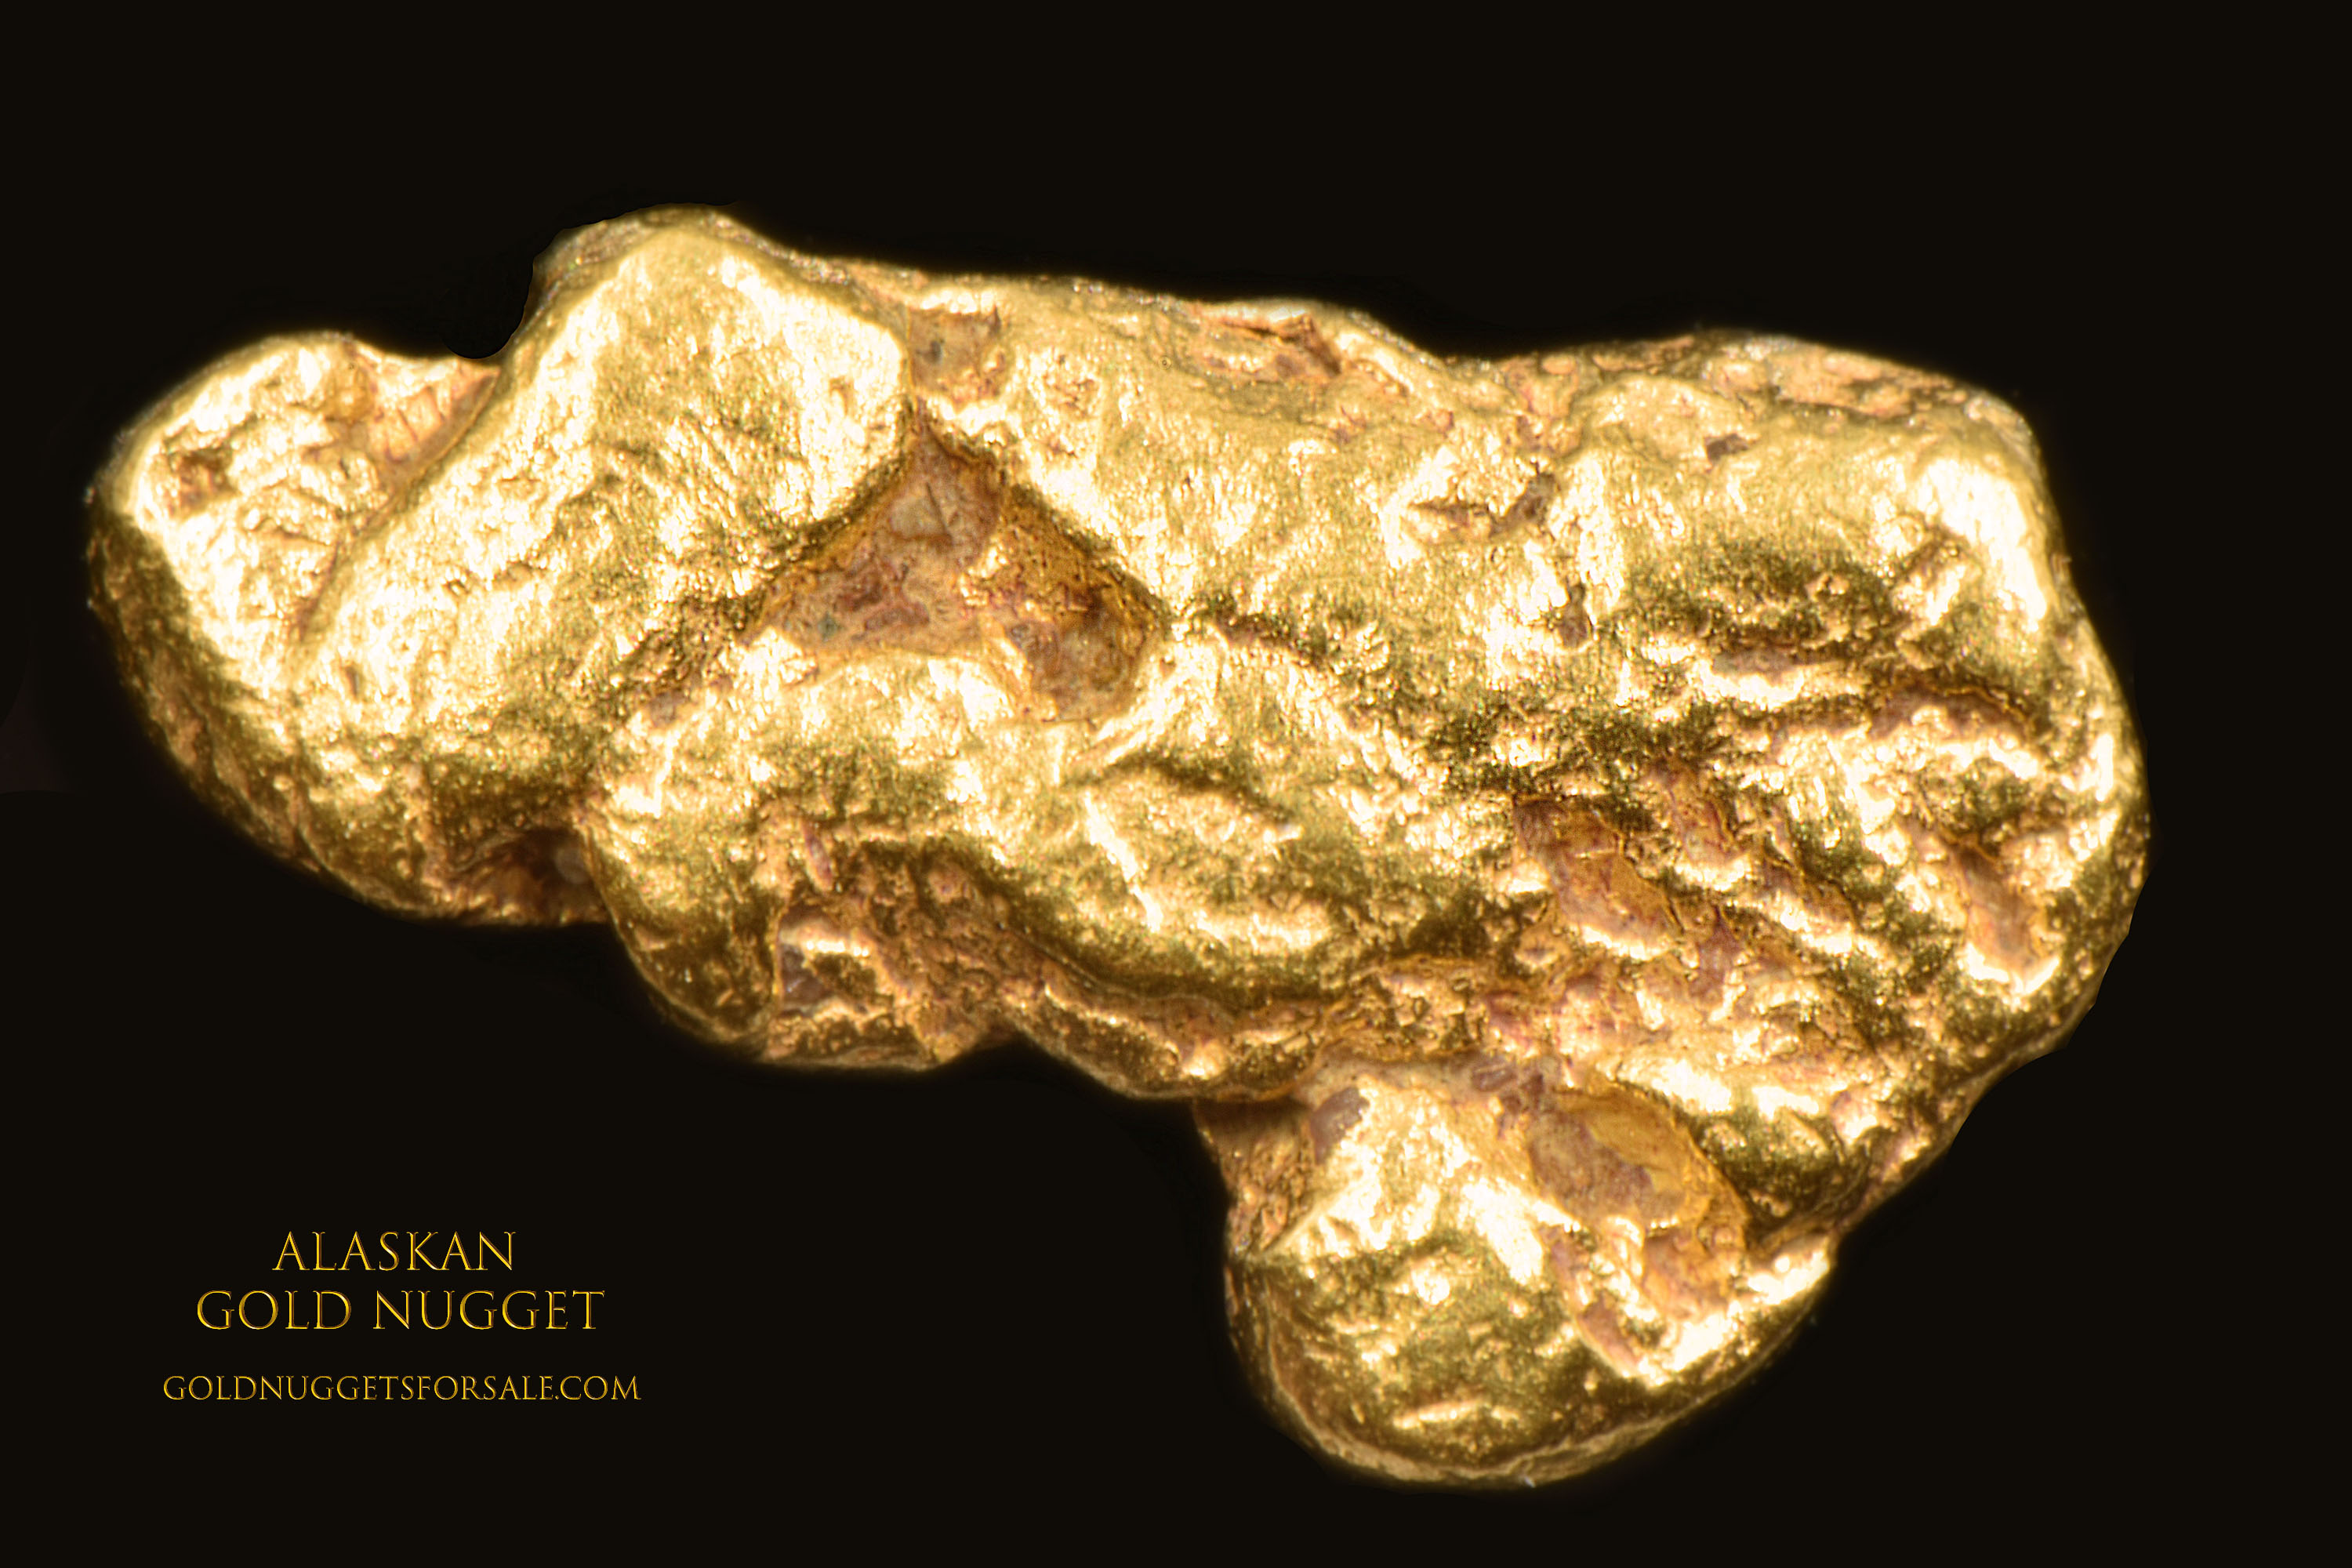 Detailed Jewelry Grade Alaskan Gold Nugget